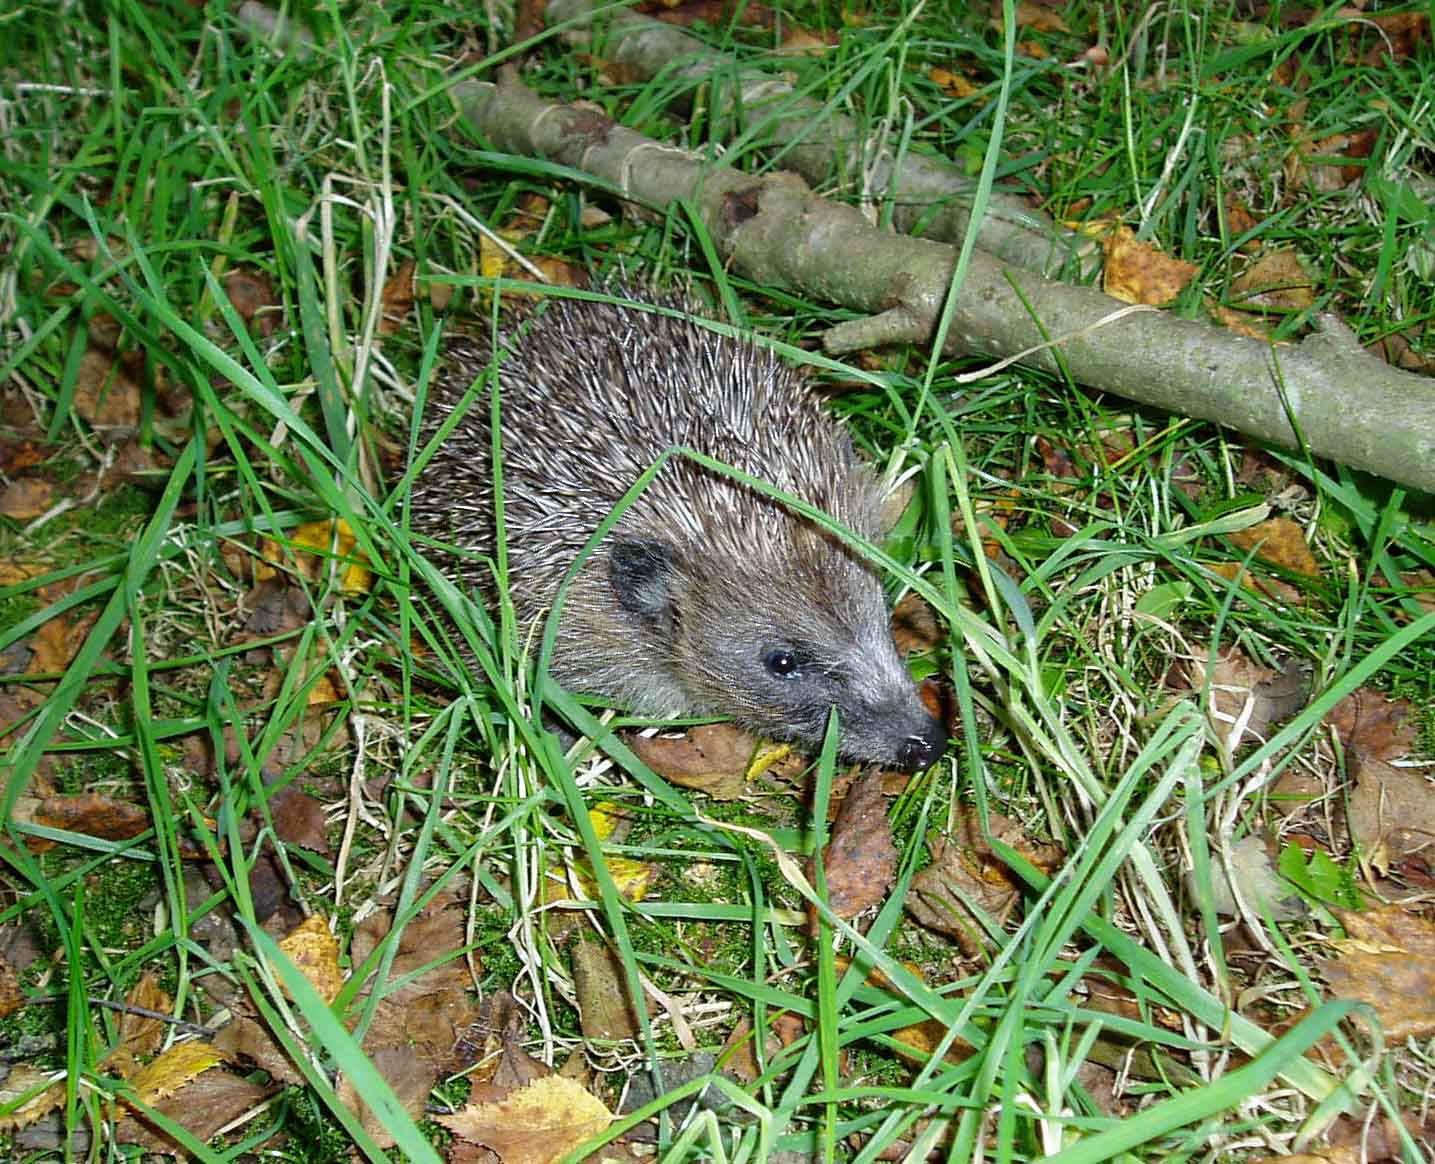 Hoglet heading back to the wild